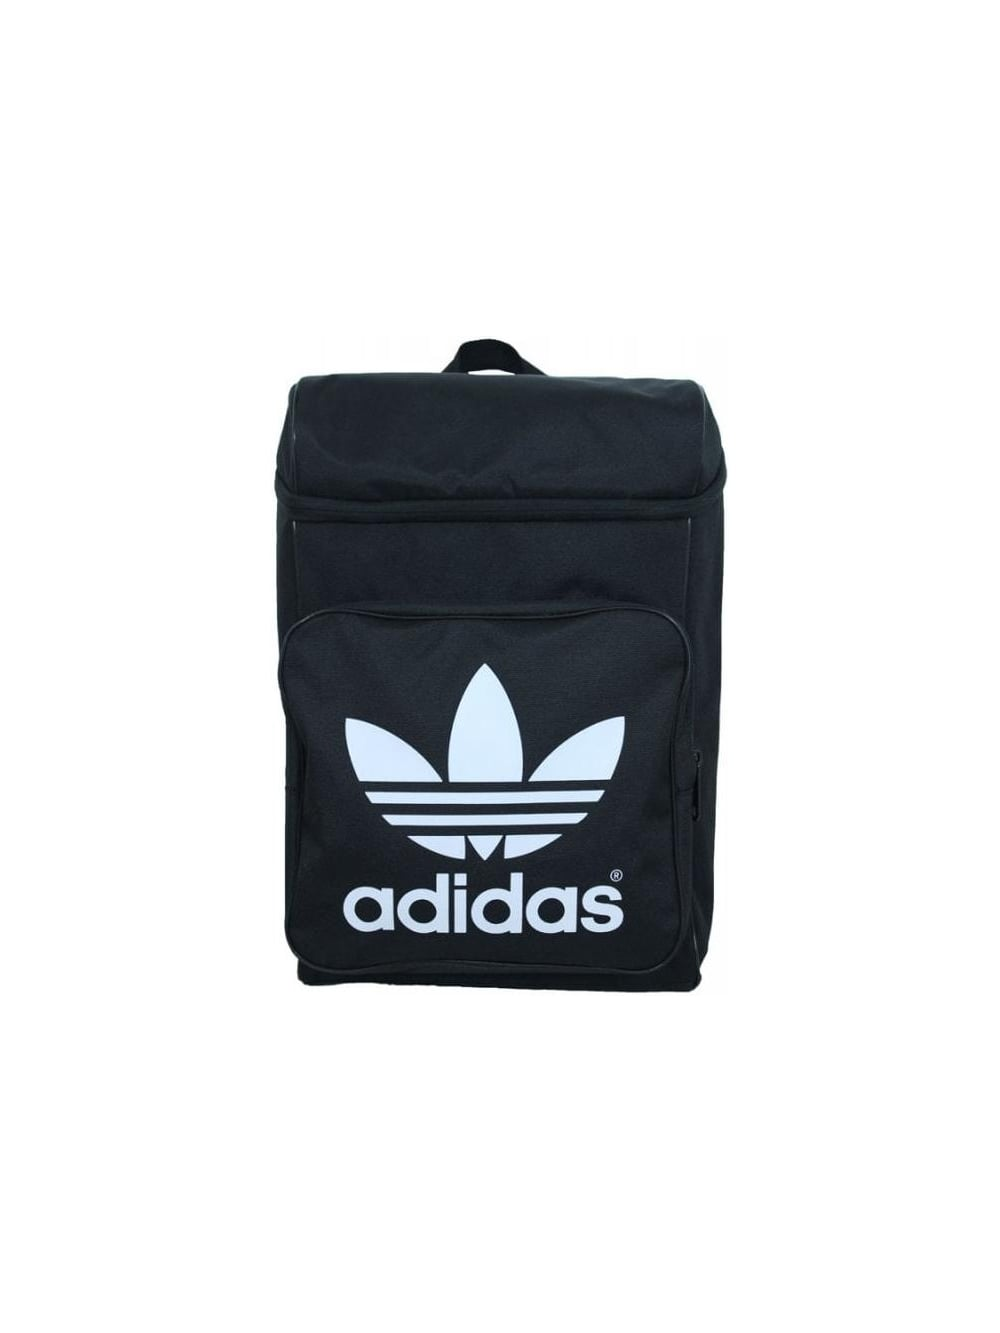 a3cde4581fd5 Adidas Classic Backpack in Black - Northern Threads